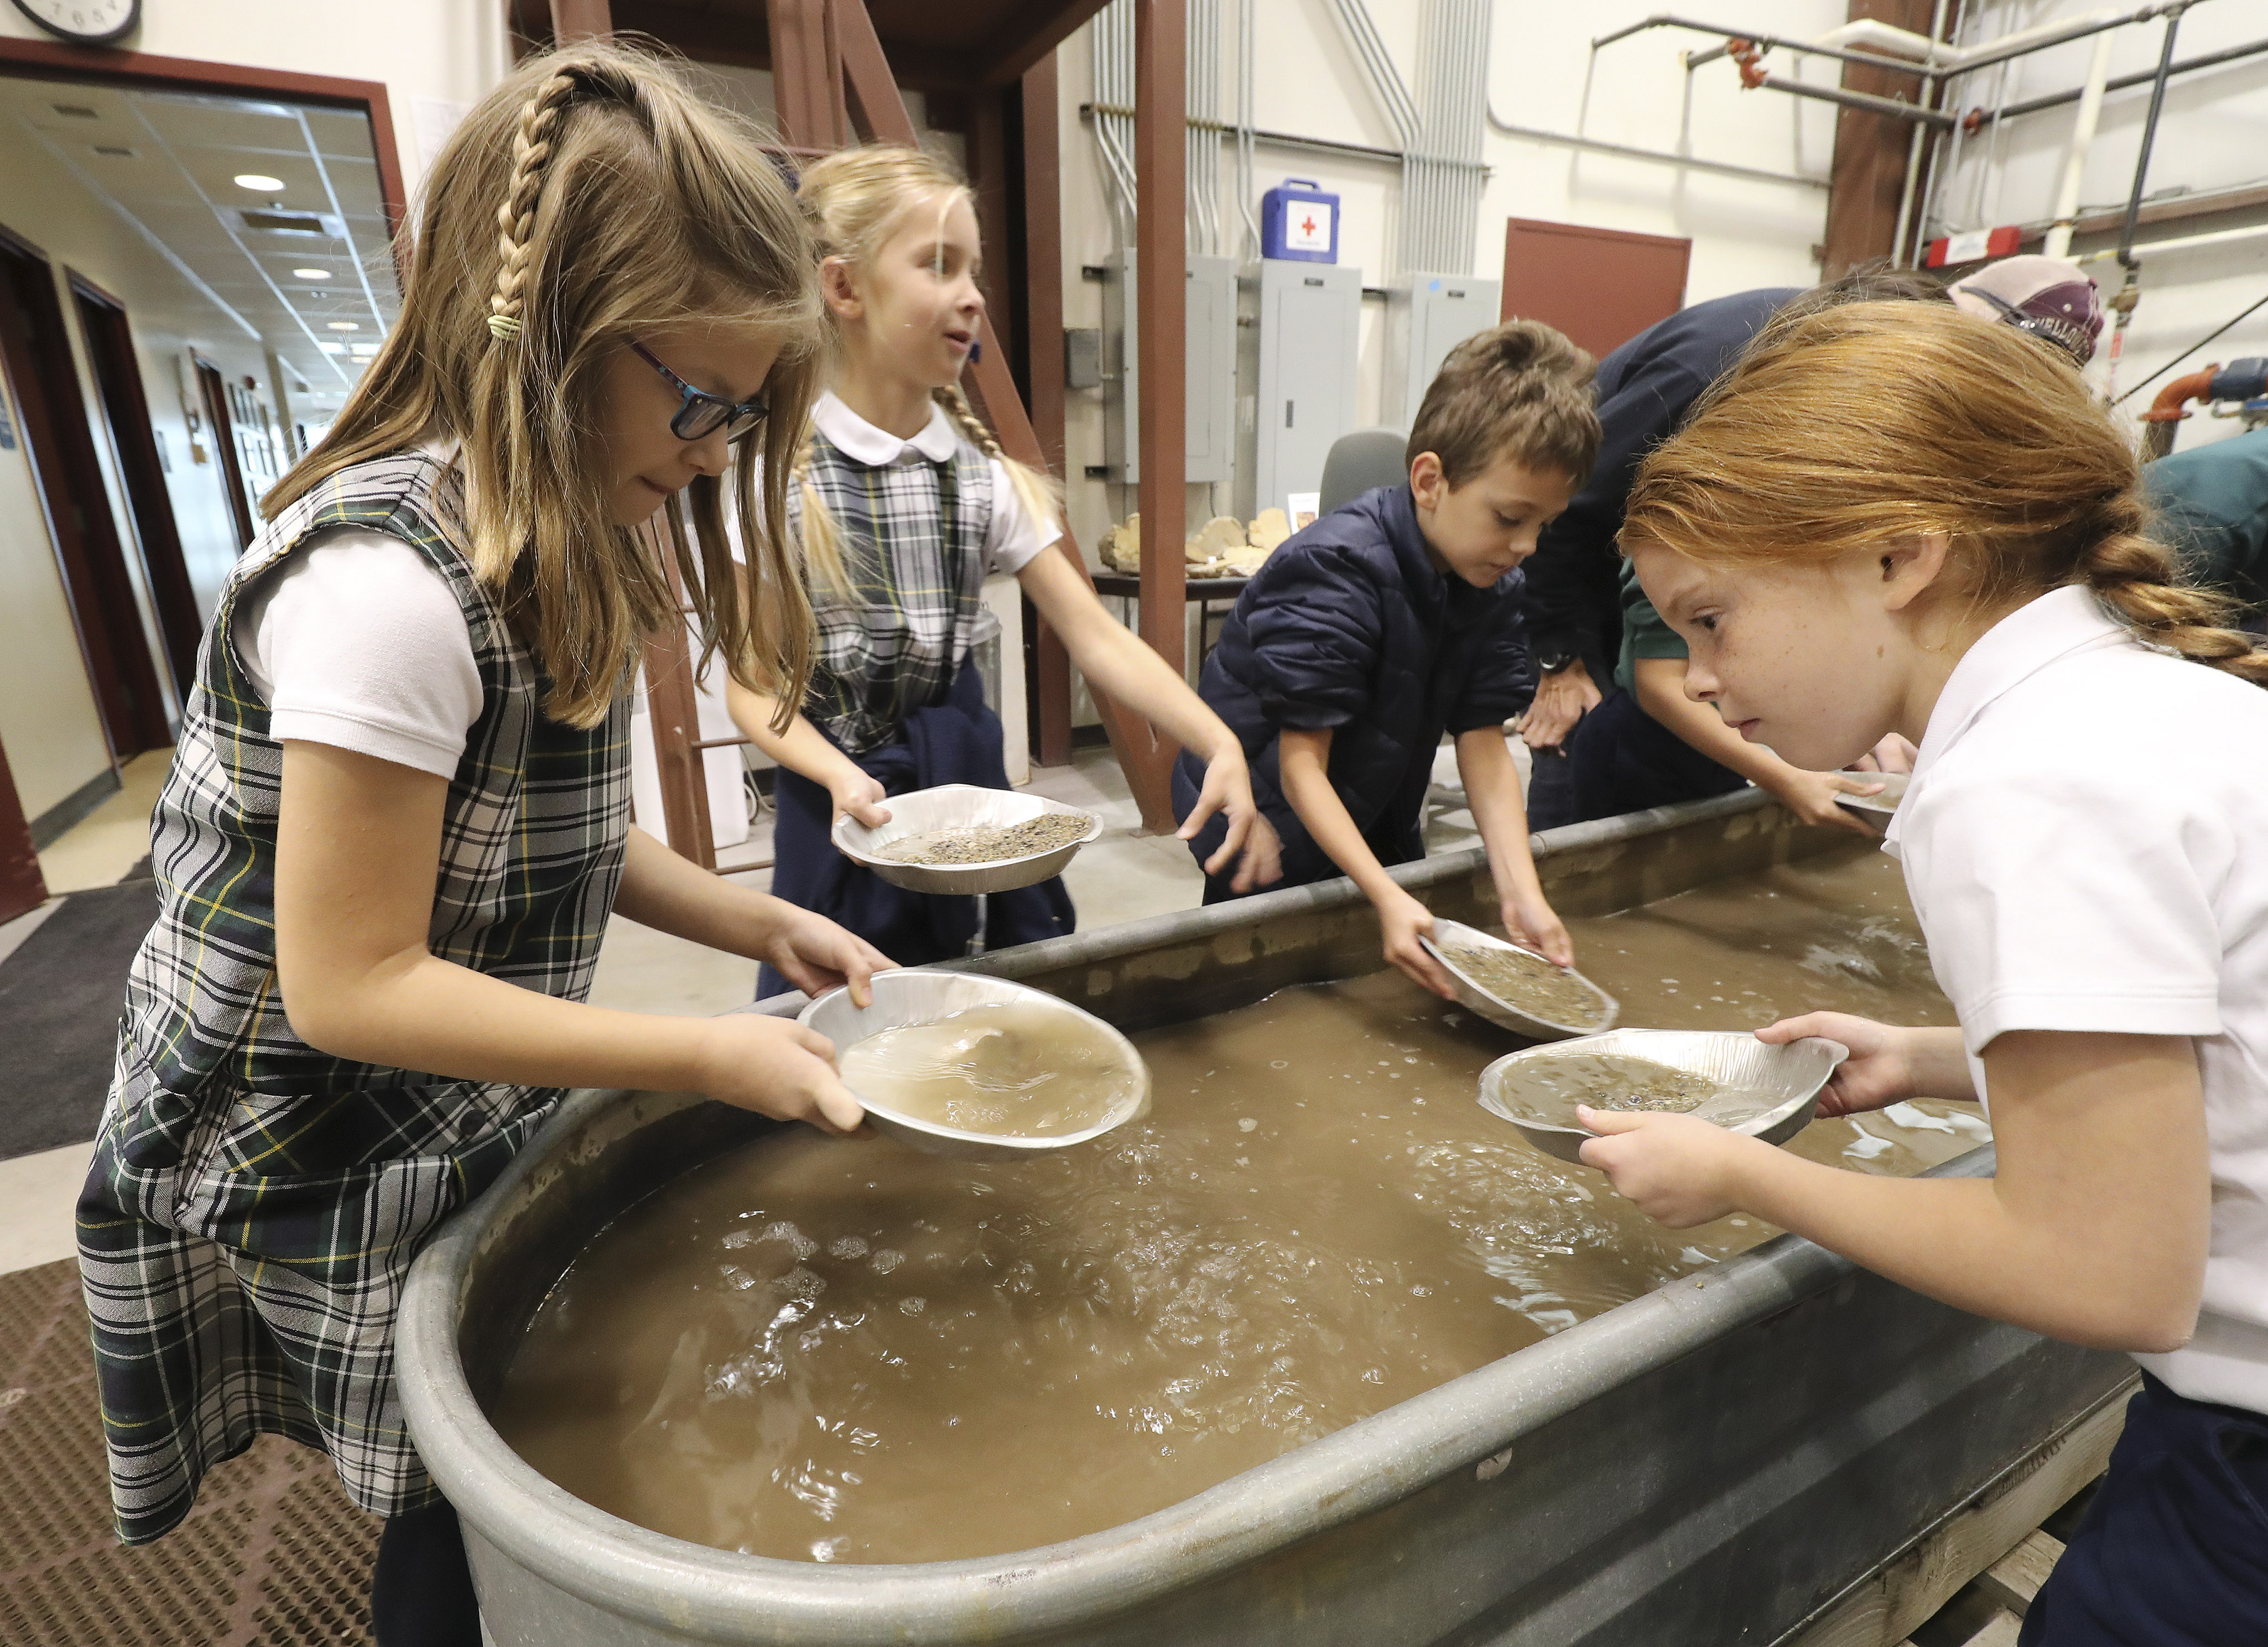 J.E. Cosgriff Memorial Catholic School students Mila Paulos, Samantha Evans, Eli Huebel and Evie Gardner pan for pyrite during Earth Science Week at the Utah Geological Survey's Core Research Center in Salt Lake City on Wednesday, Oct. 9, 2019. More than 600 elementary-age students from schools along the Wasatch Front will visit the center this week for hands-on learning opportunities as they explore rocks and minerals, fossils, dinosaurs and geologic processes.